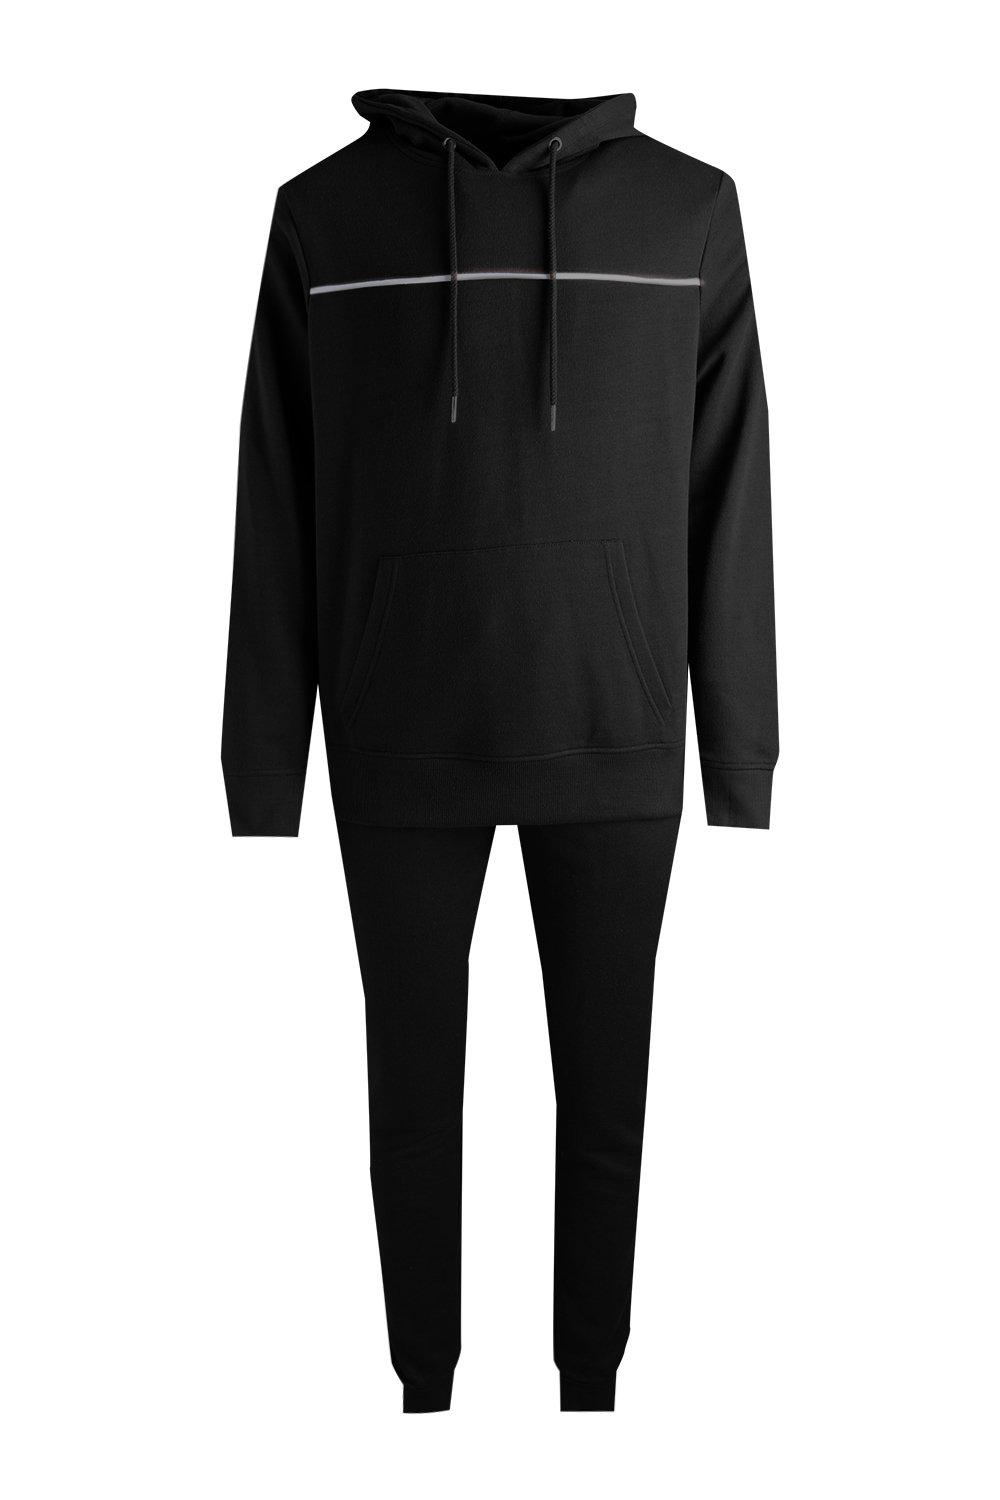 boohooMAN black Over The Head Hooded Tracksuit With Piping